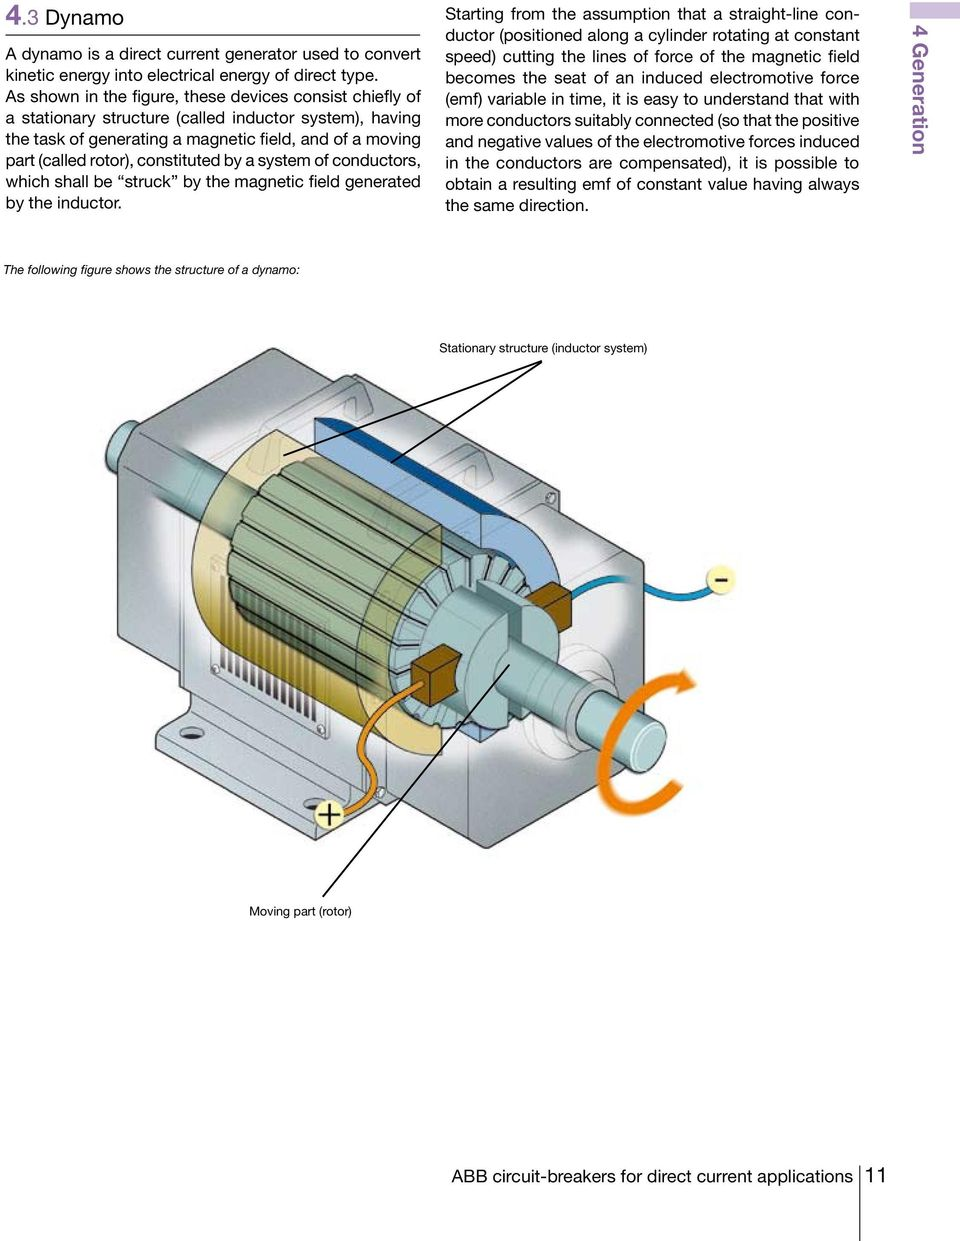 Technical Application Papers No5 Abb Circuit Breakers For Direct Dynamo Diagram Constituted By A System Of Conductors Which Shall Be Struck The Magnetic Field Generated